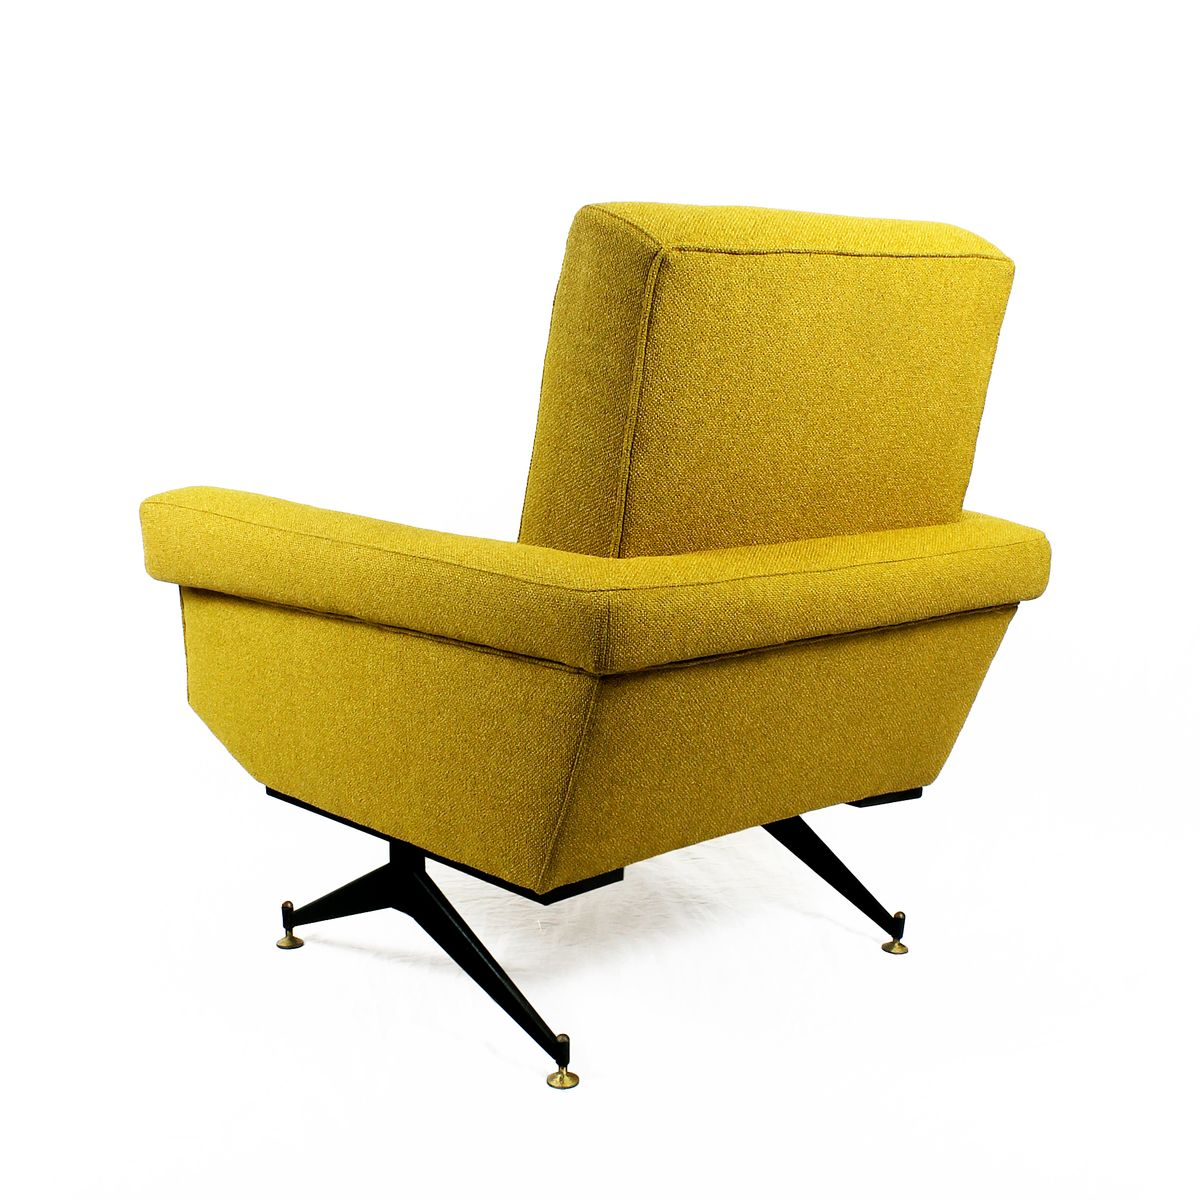 Padded armchairs 1960s set of 2 for sale at pamono for 2 armchairs for sale